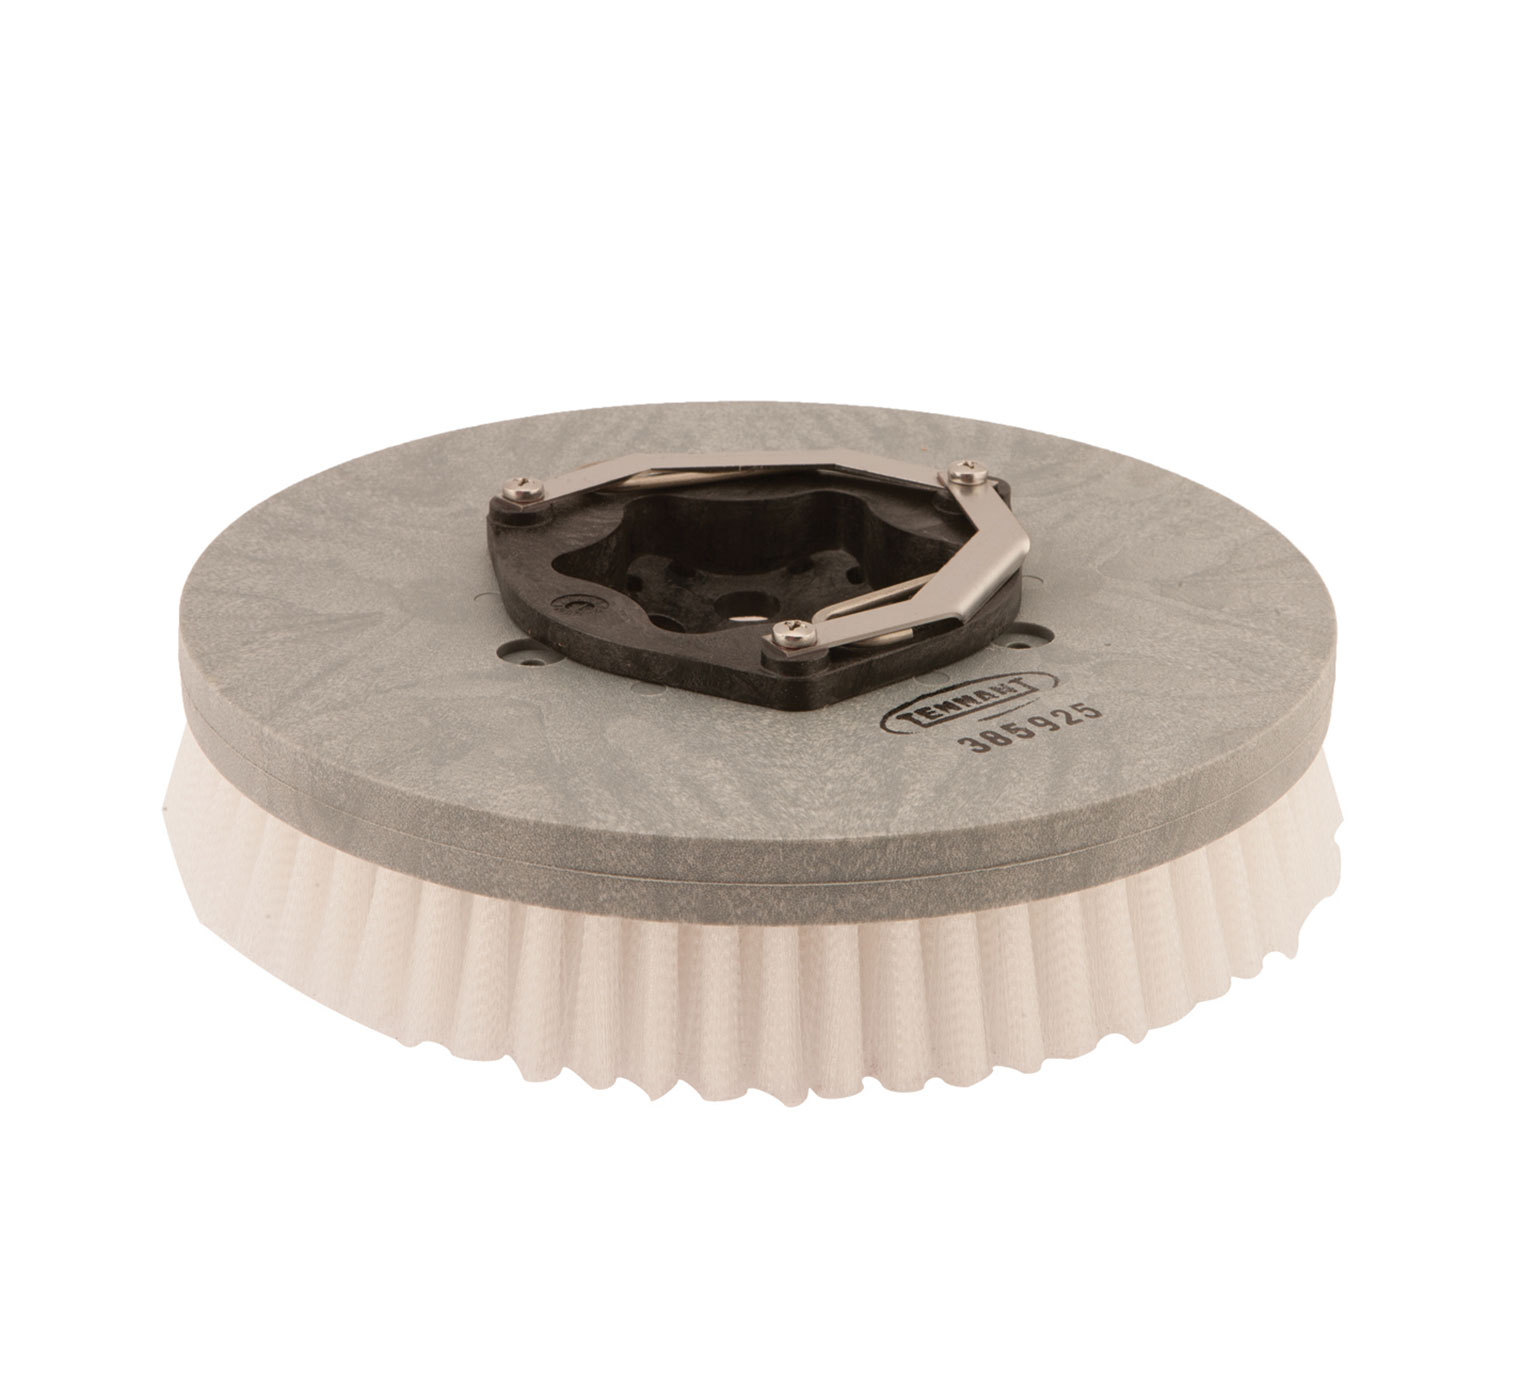 385925 Nylon Disk Scrub Brush Assembly – 13 in / 330 mm alt 1